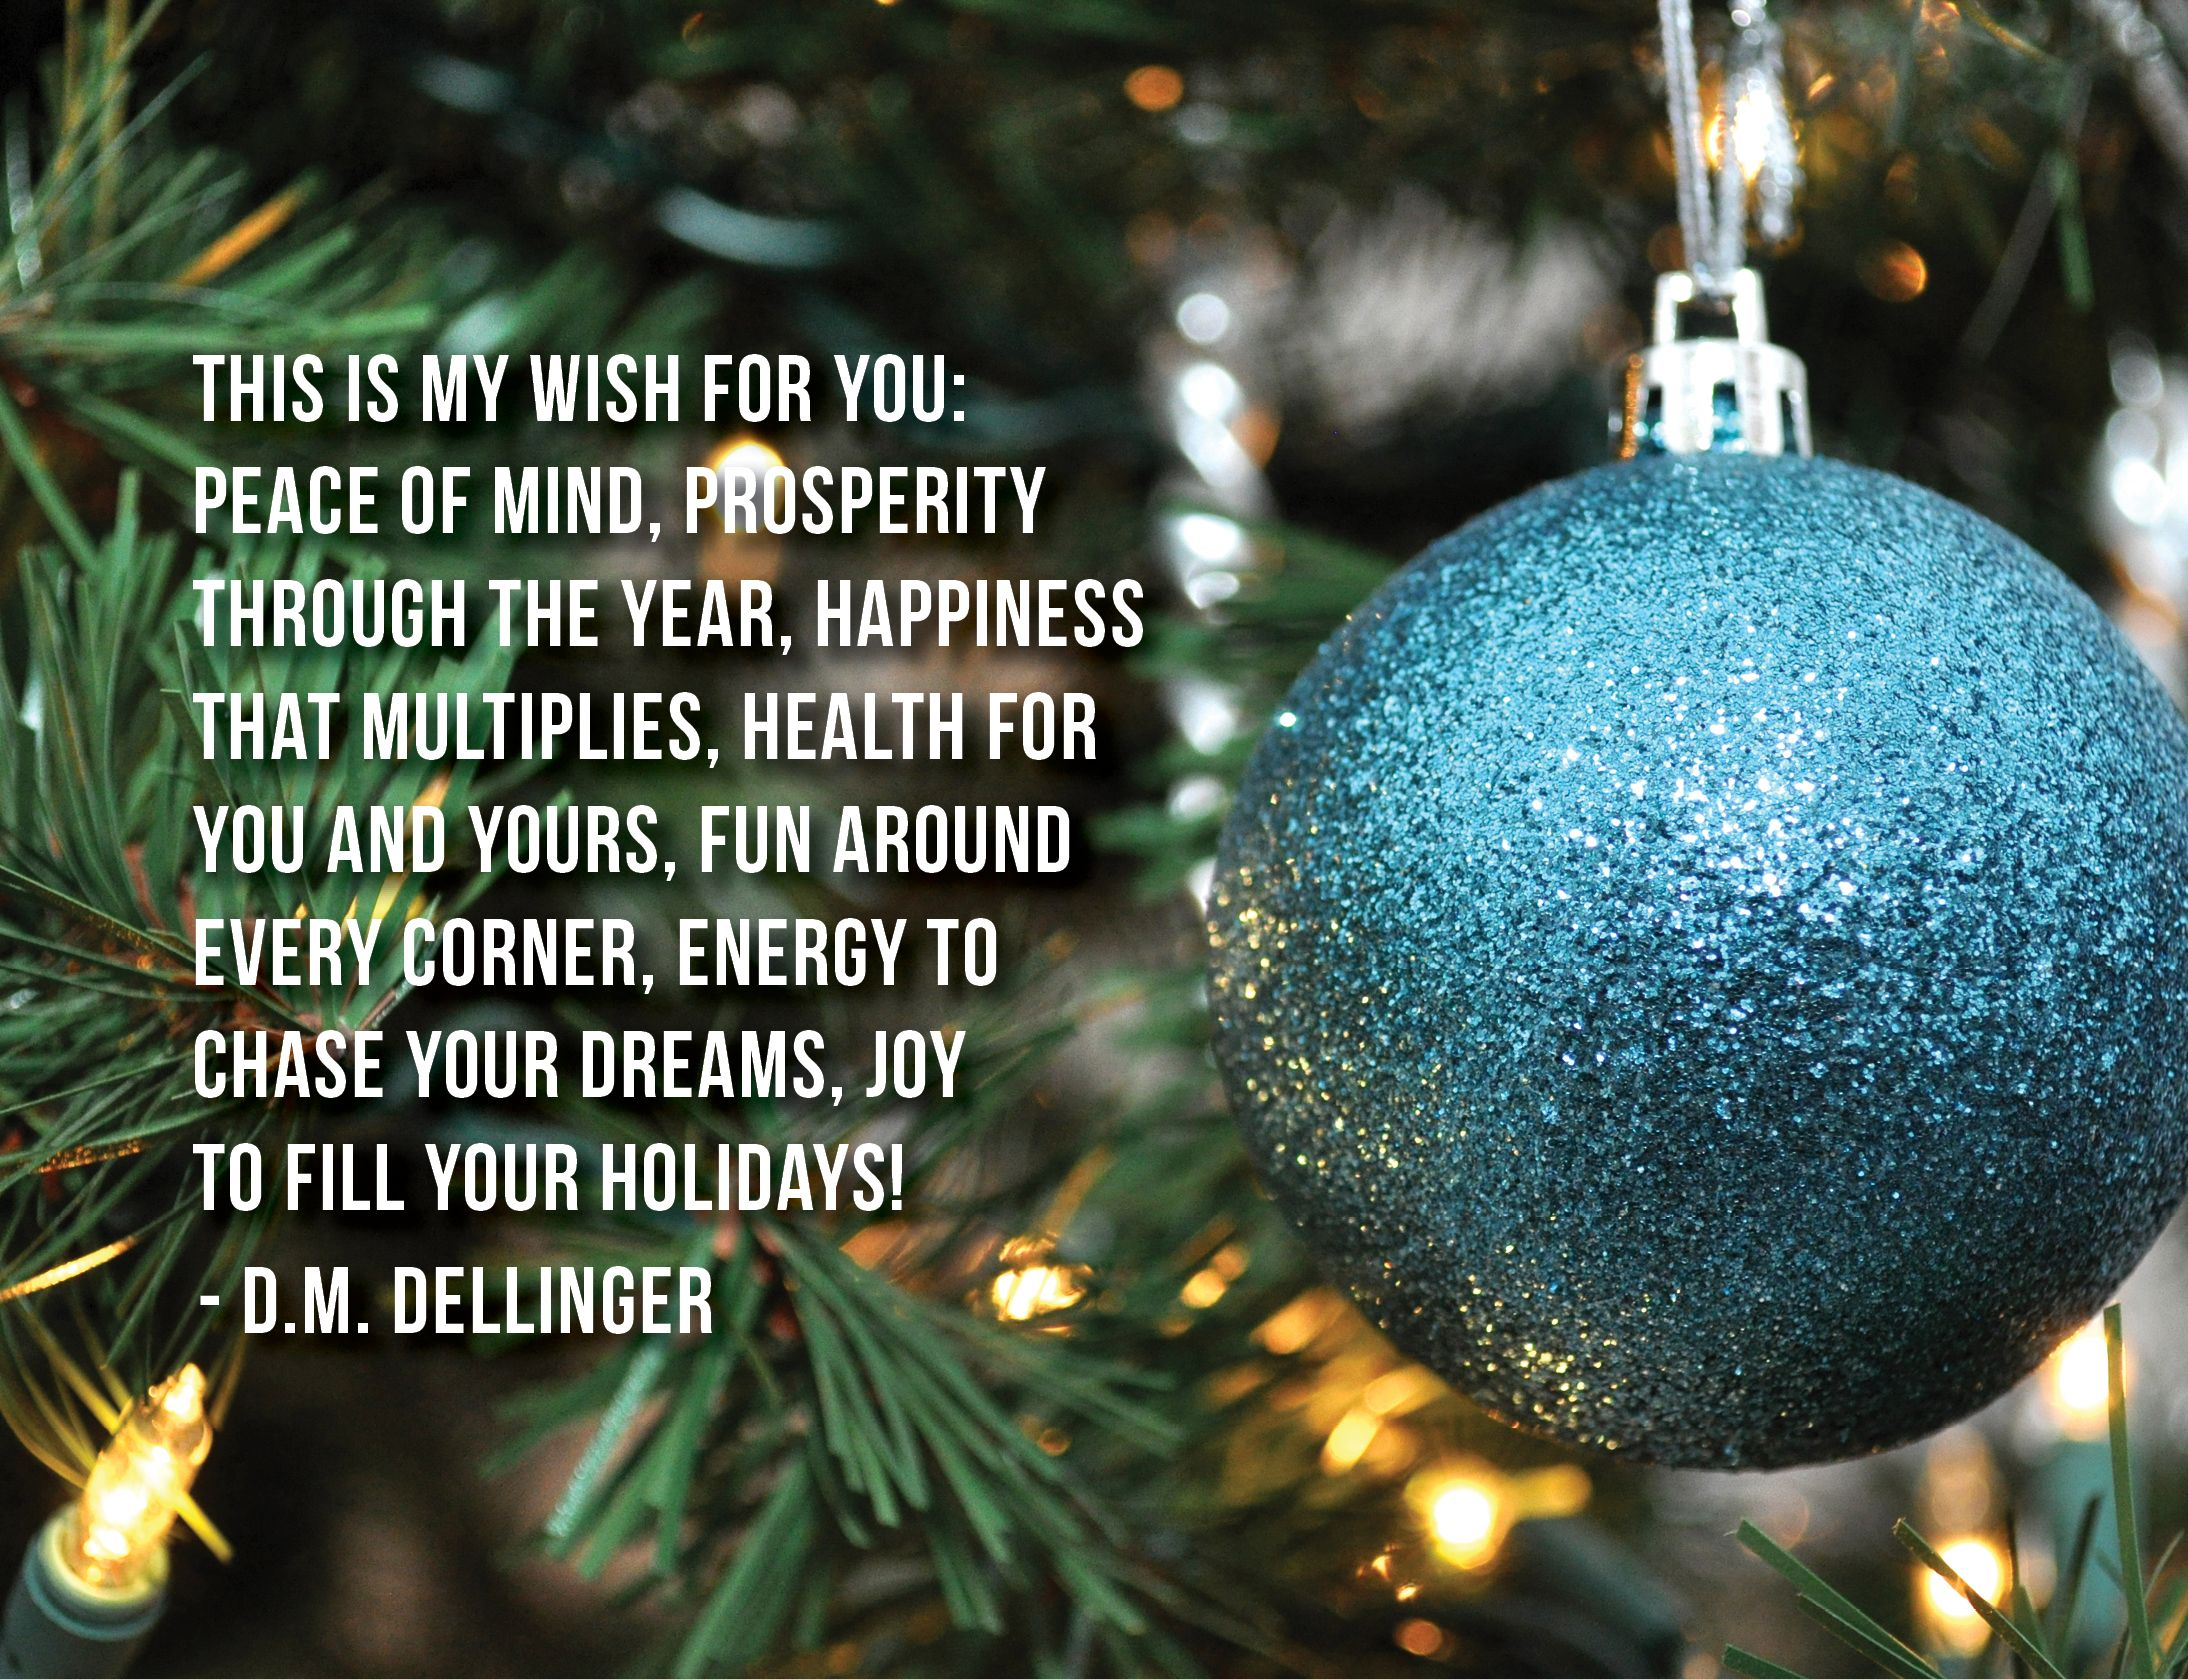 This Is My Wish For You Peace Of Mind Prosperity Through The Year Happiness That Multiplies Health For You And You Holiday Quotes Christmas Quotes Holiday